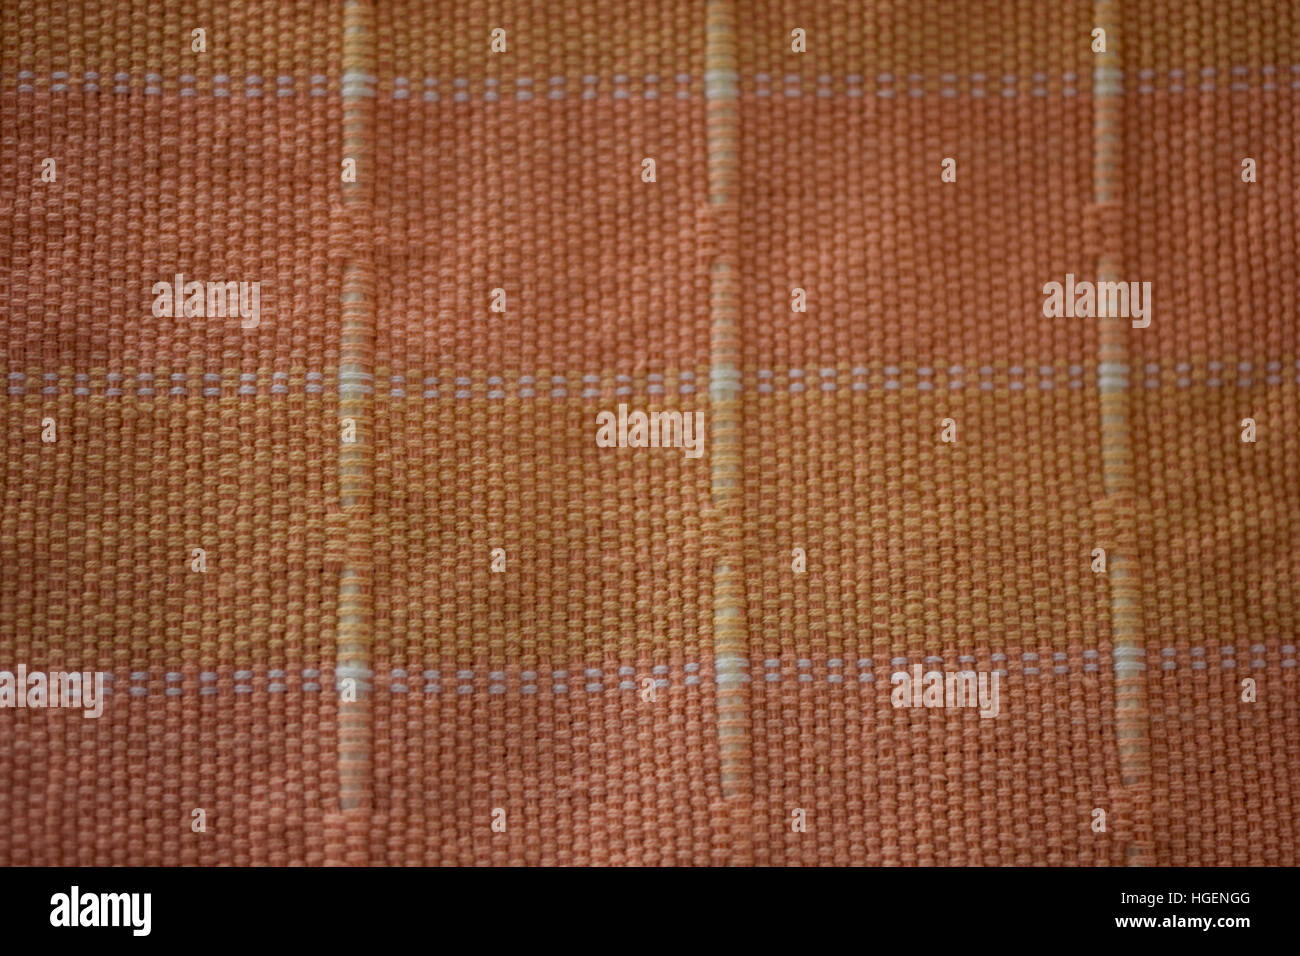 Fabric texture. Cloth knitted background. For scrap booking. - Stock Image